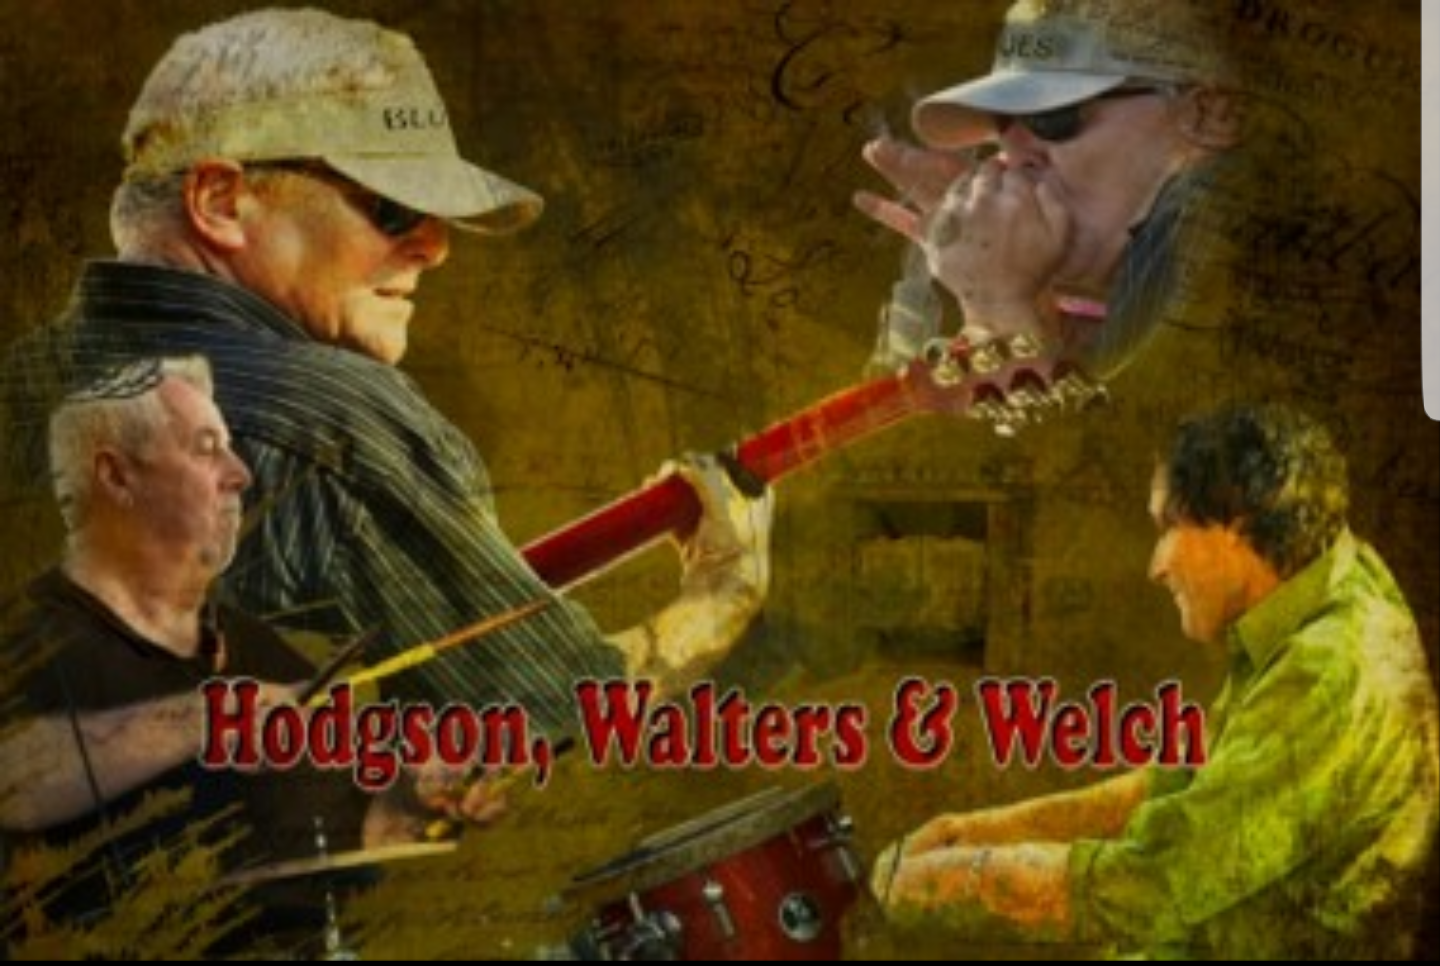 Hodgson, Walters & Welch